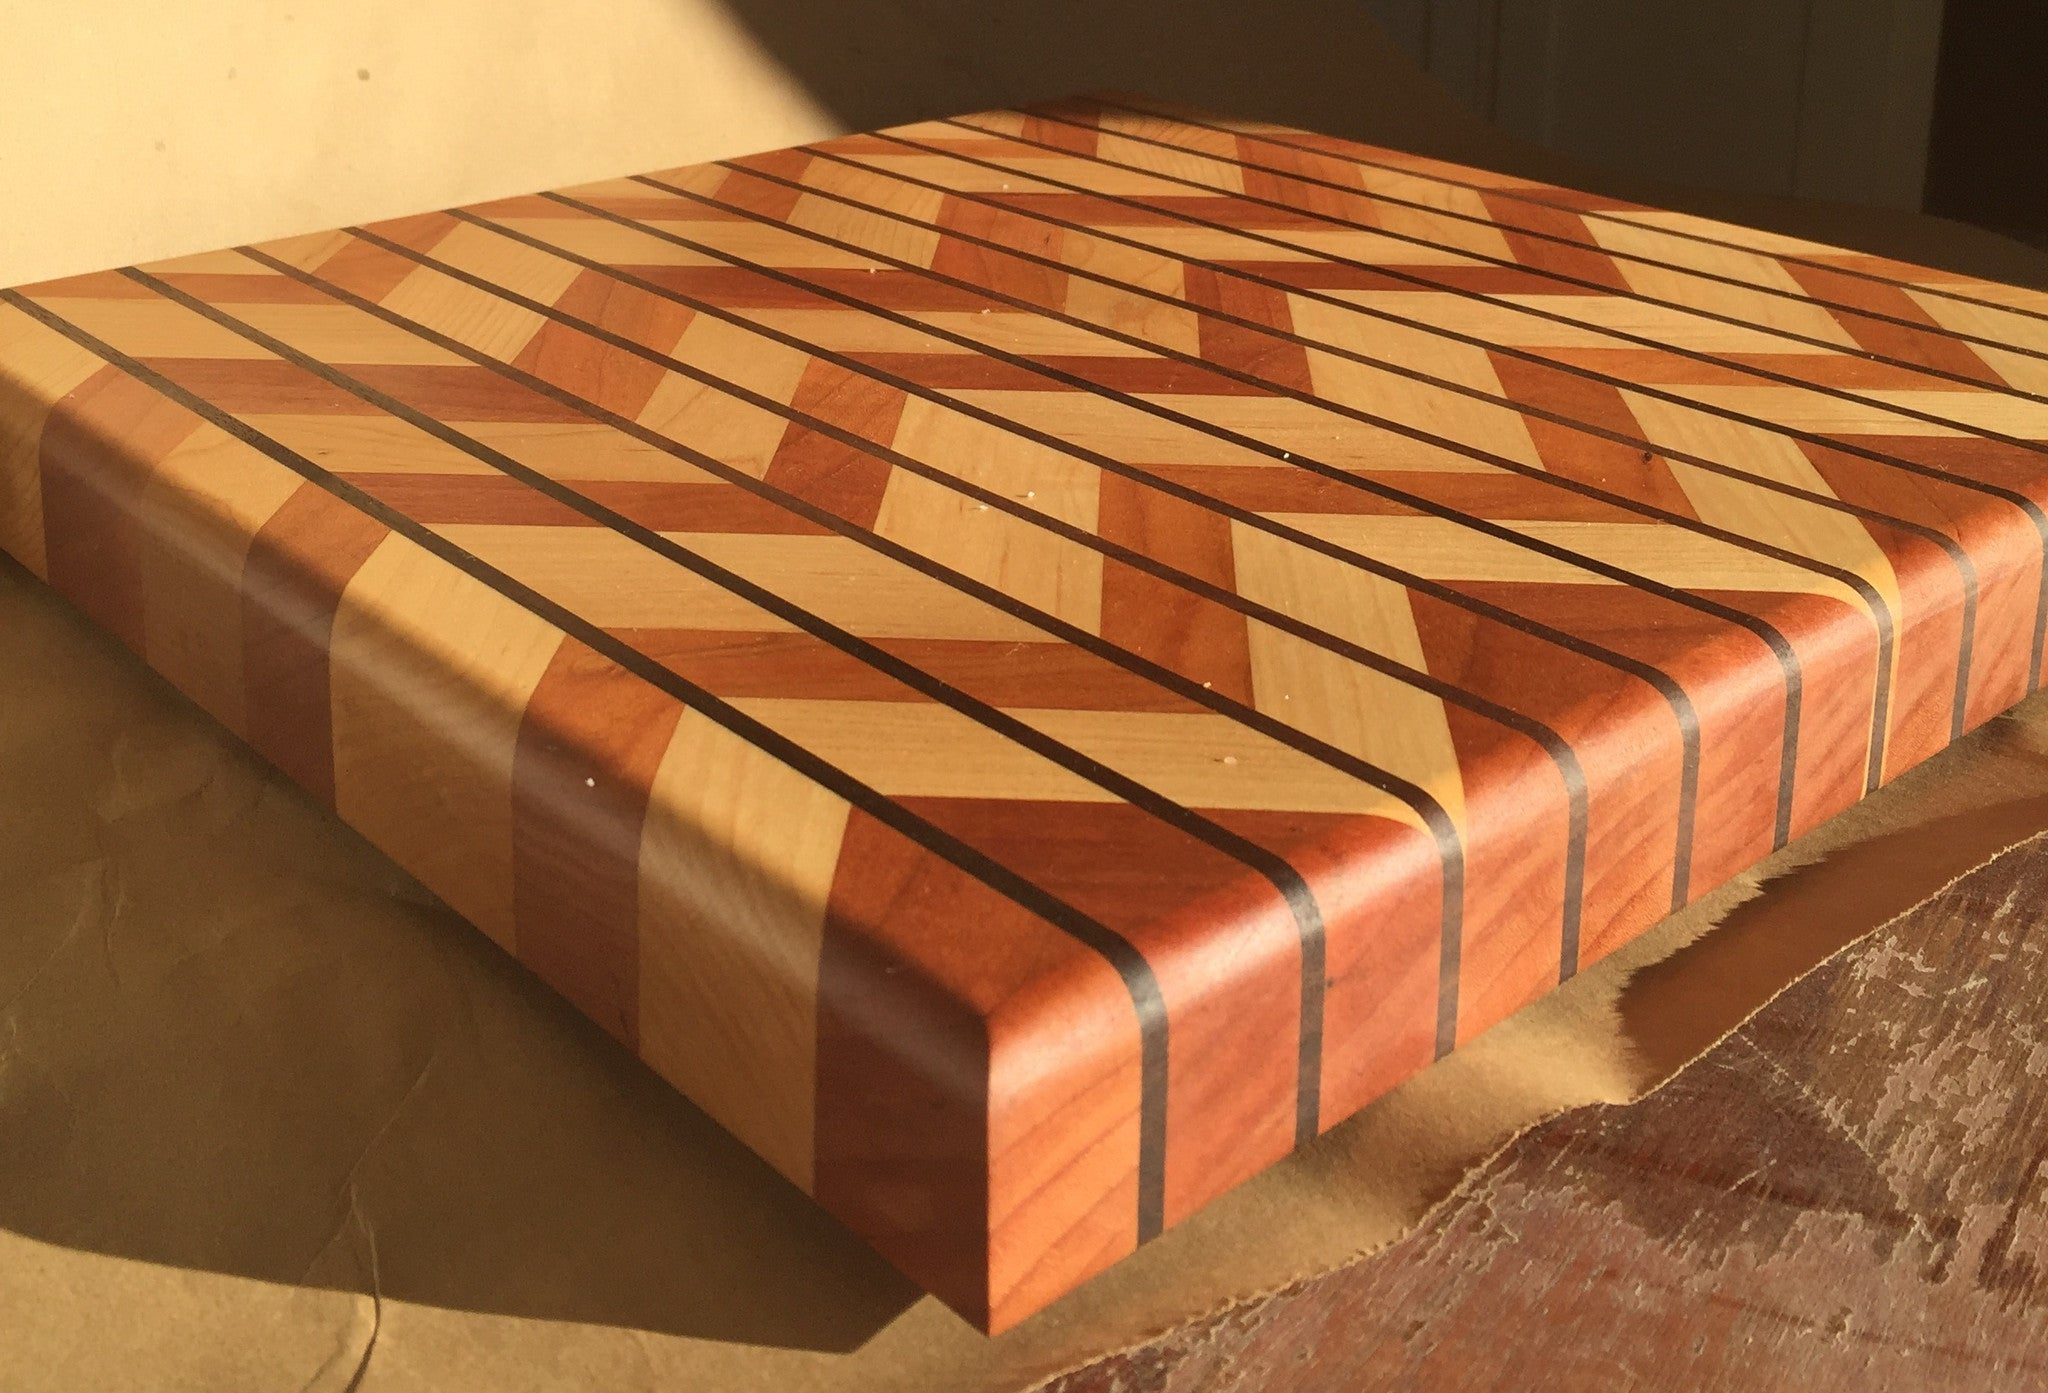 "Cherry, Maple, and Walnut - Chevron Style Cutting Board 14  3/8"" wide by 14  3/8"" by 1  3/8"" Thick (plus feet)"